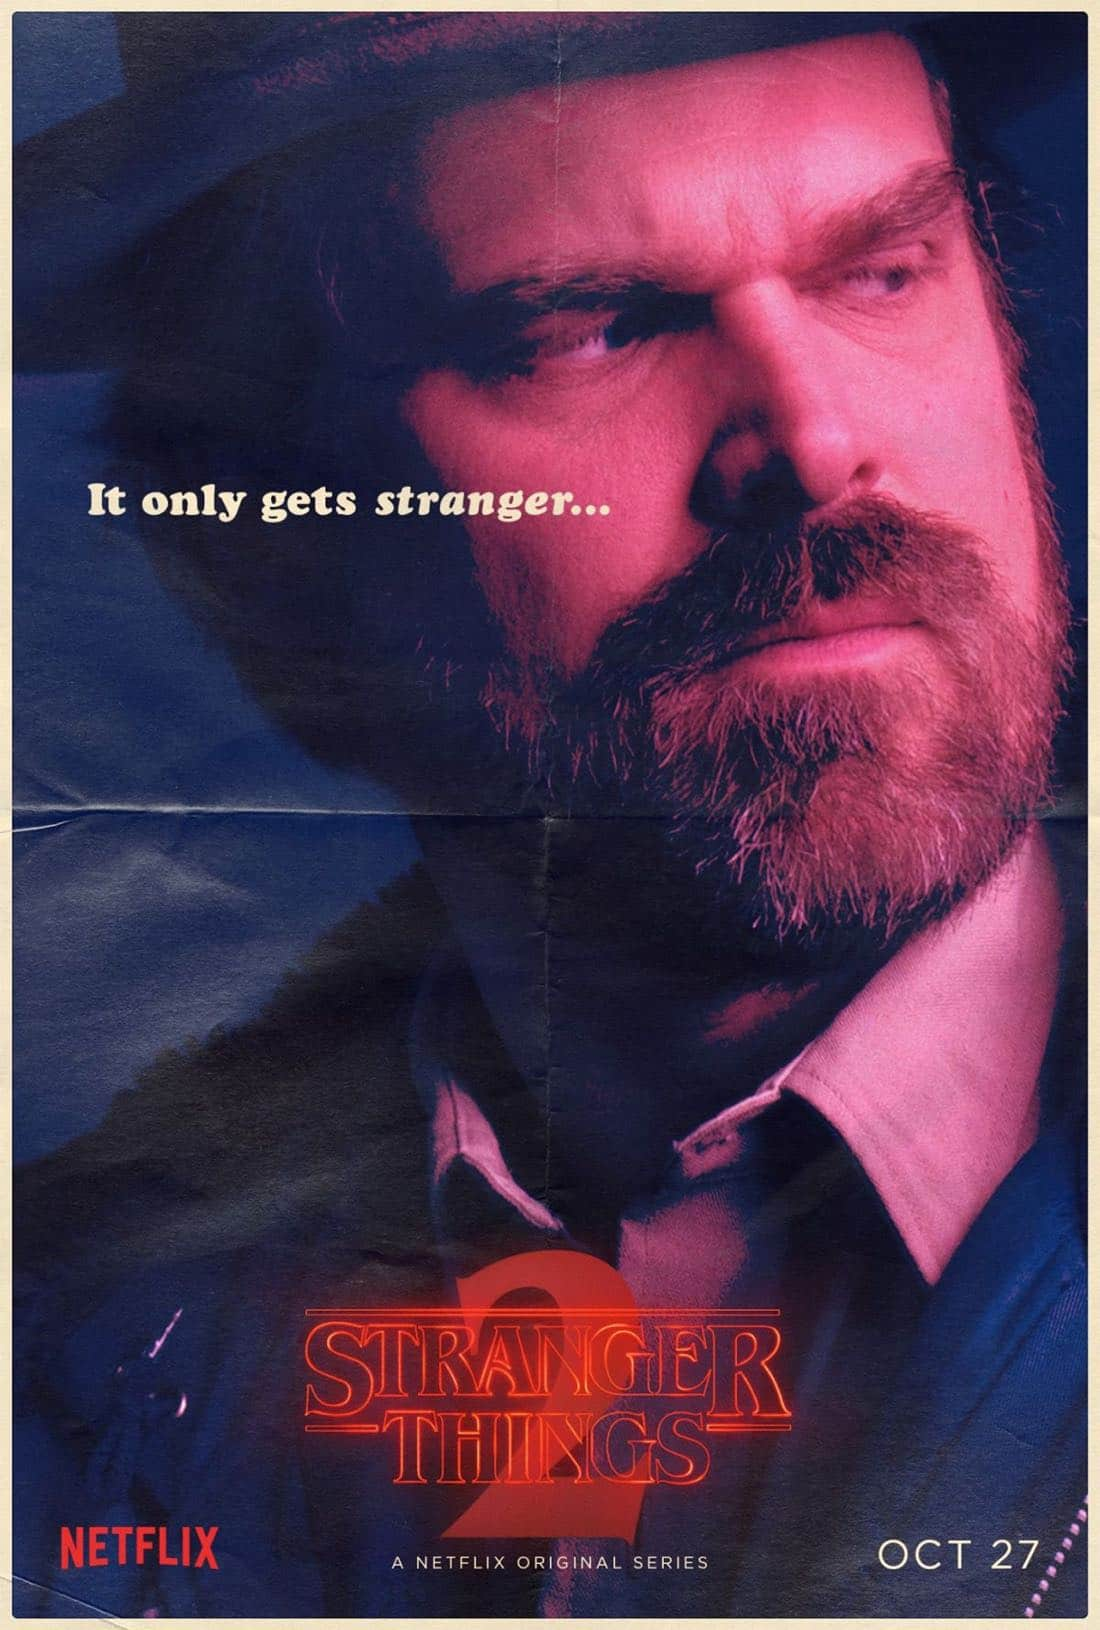 Stranger Things Character Poster - David Harbour - Chief Hopper